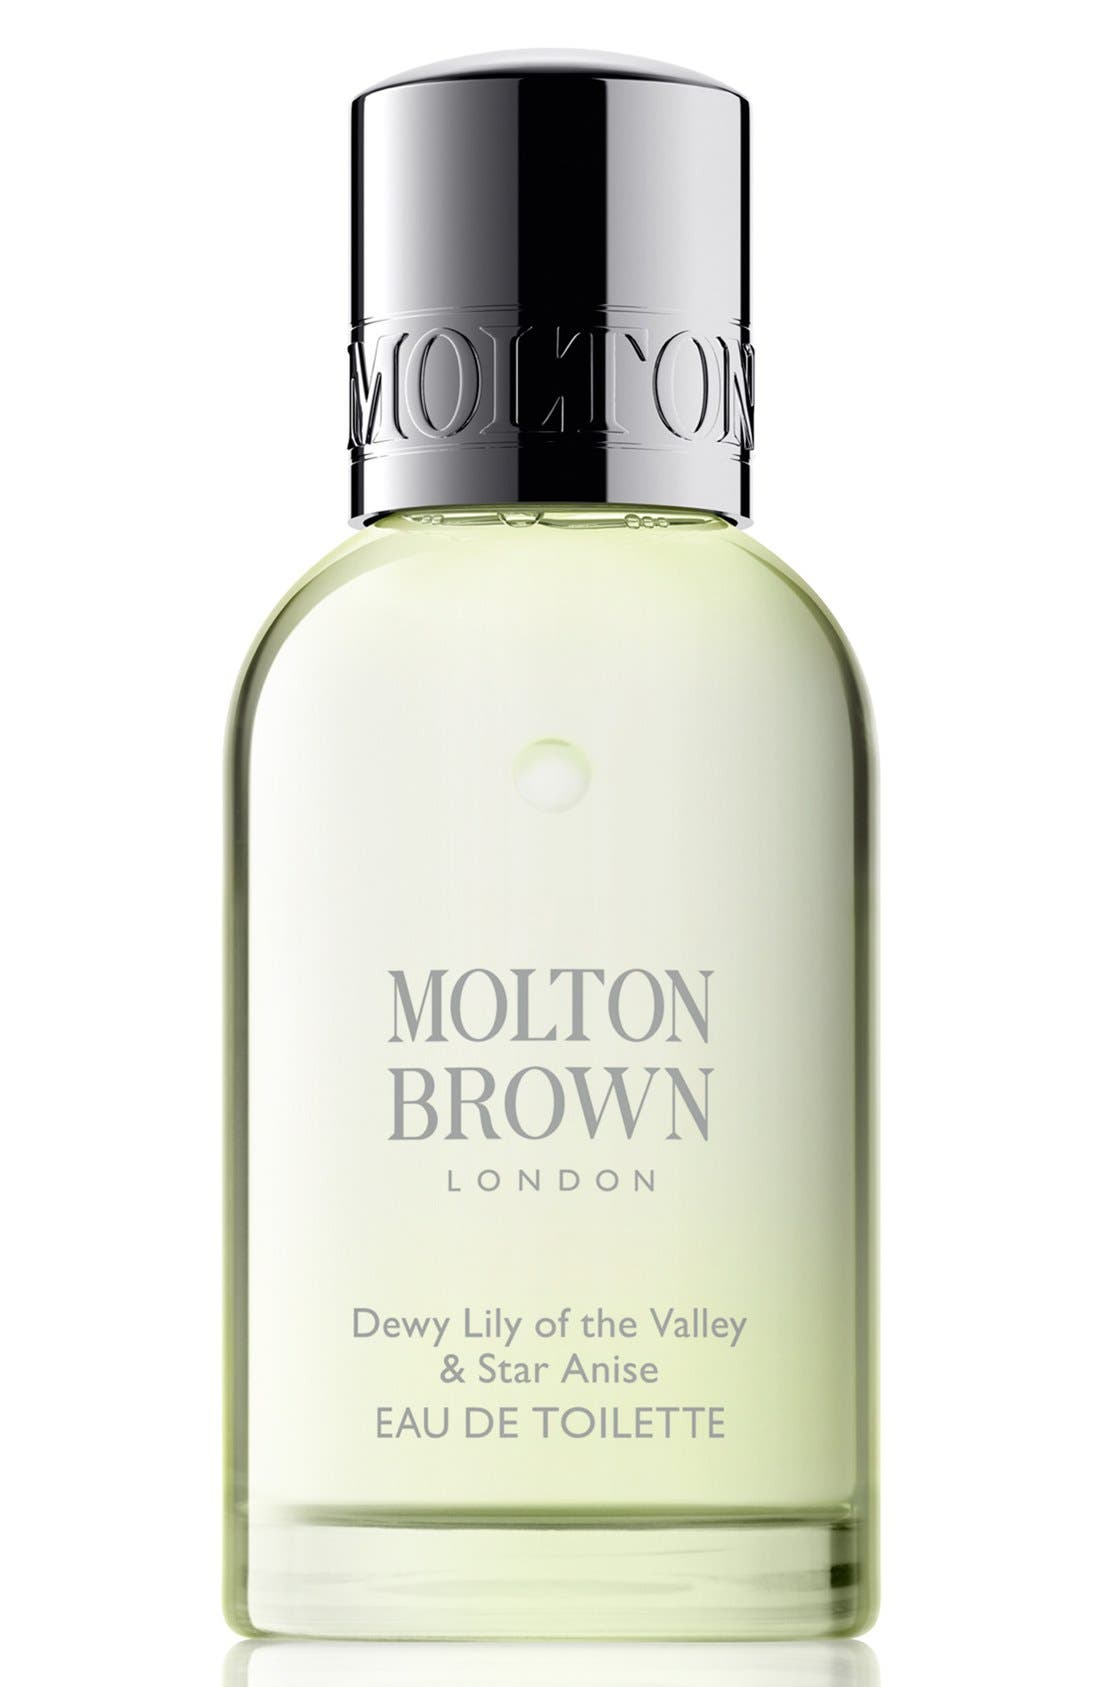 MOLTON BROWN London Dewy Lily of the Valley & Star Anise Eau de Toilette